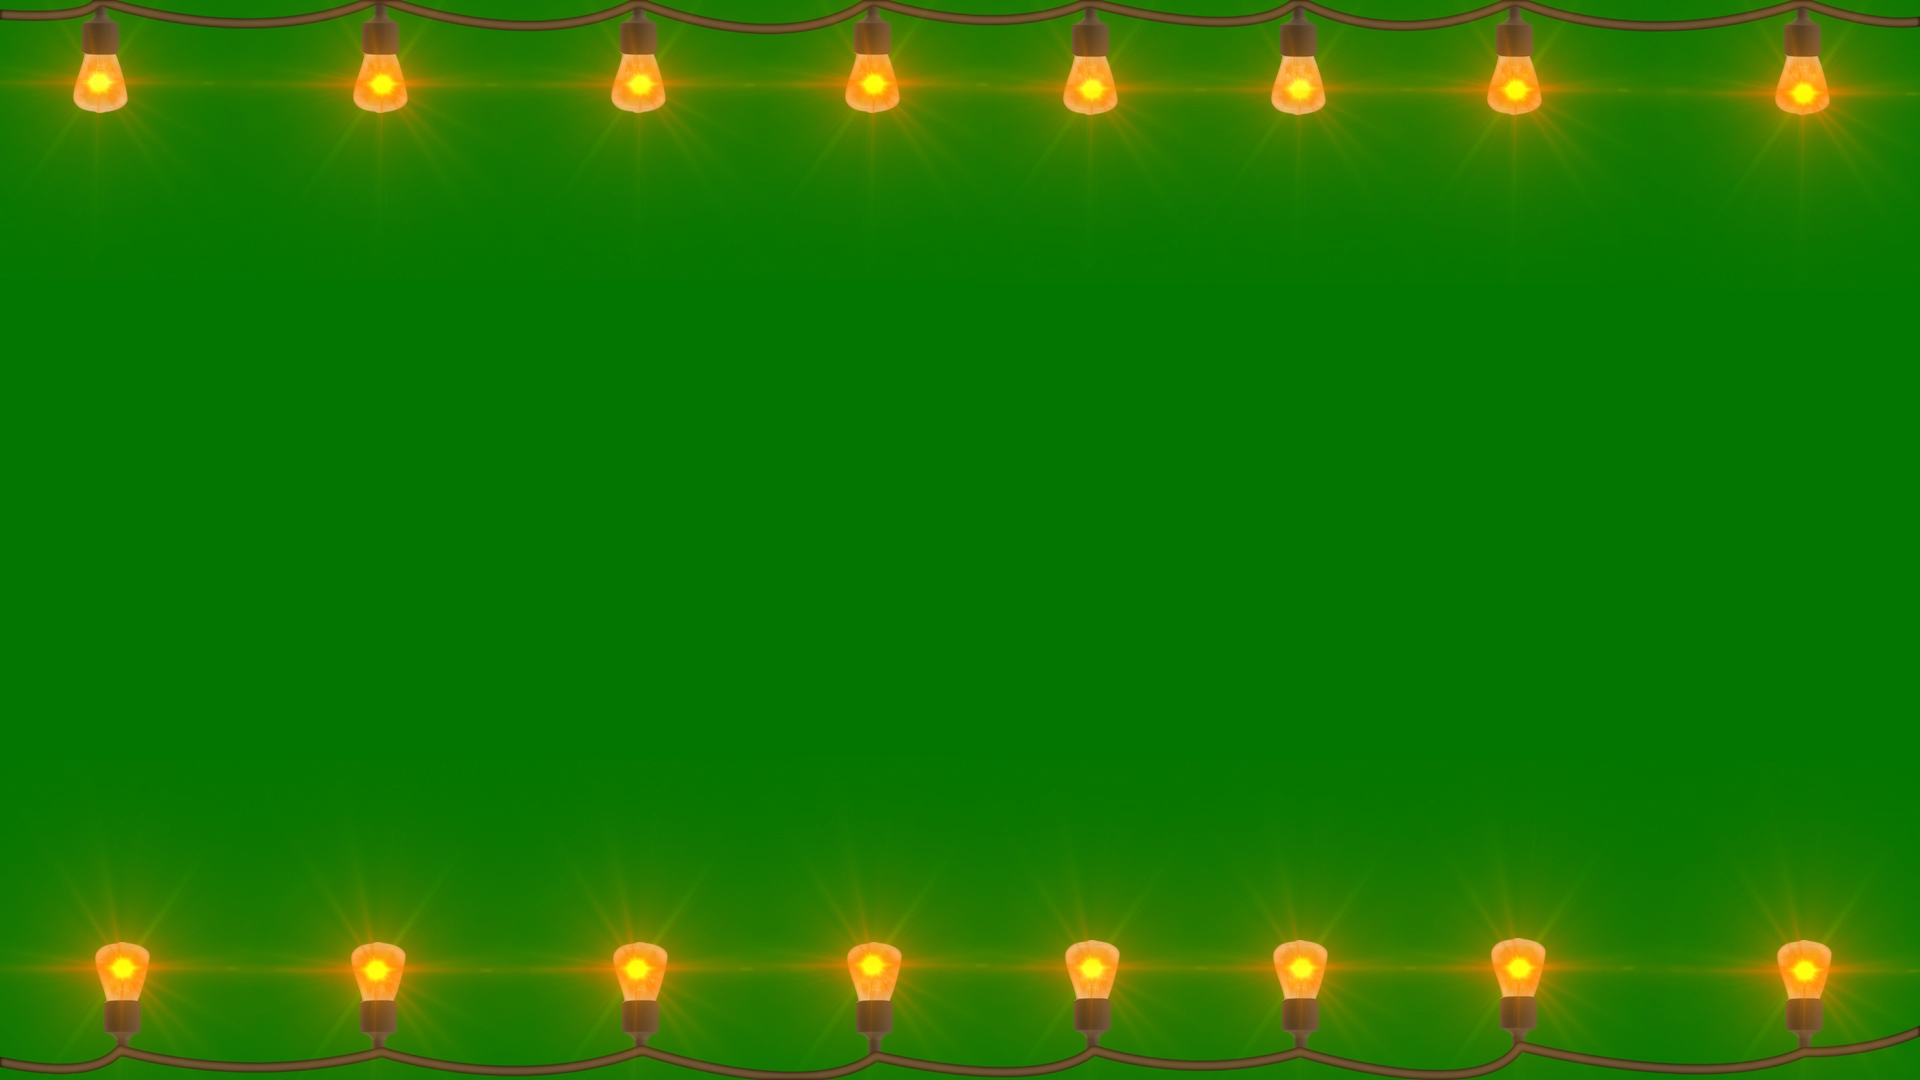 Light Blinking Black and Green Screen Video Frame Effects | Free Title Footage